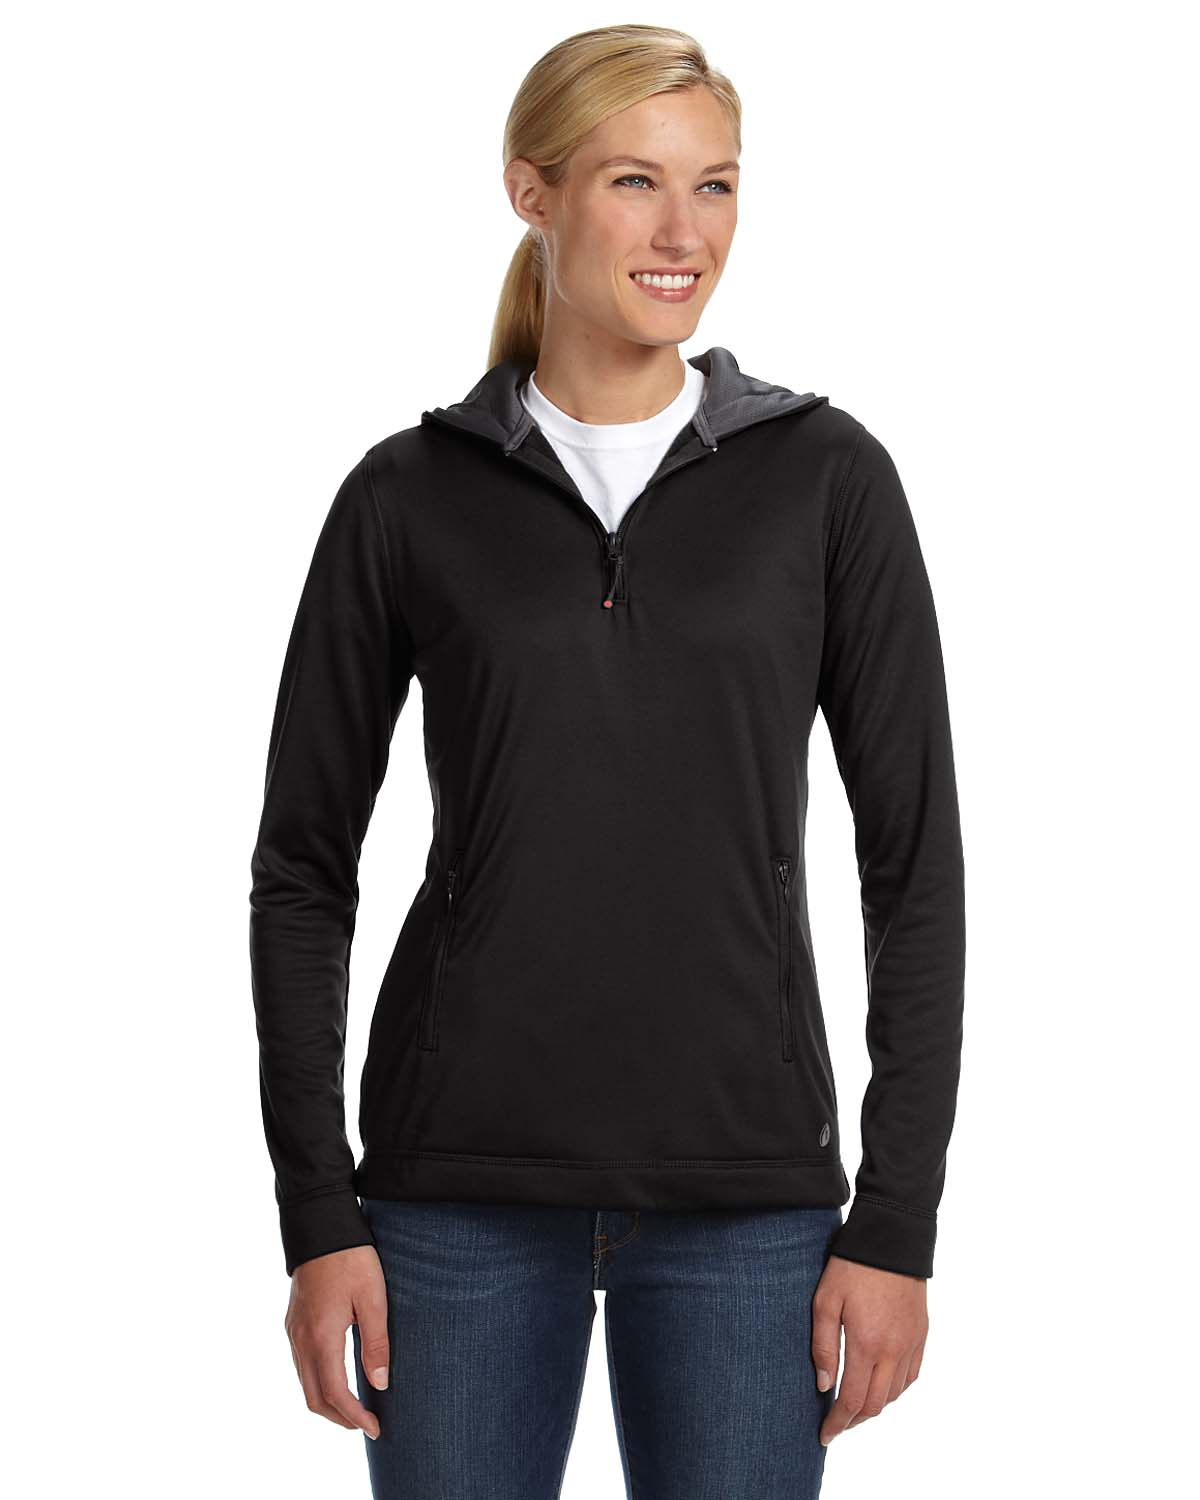 ... Women s Tech Fleece Quarter-Zip Pullover Hood. Click to Zoom 9671da396